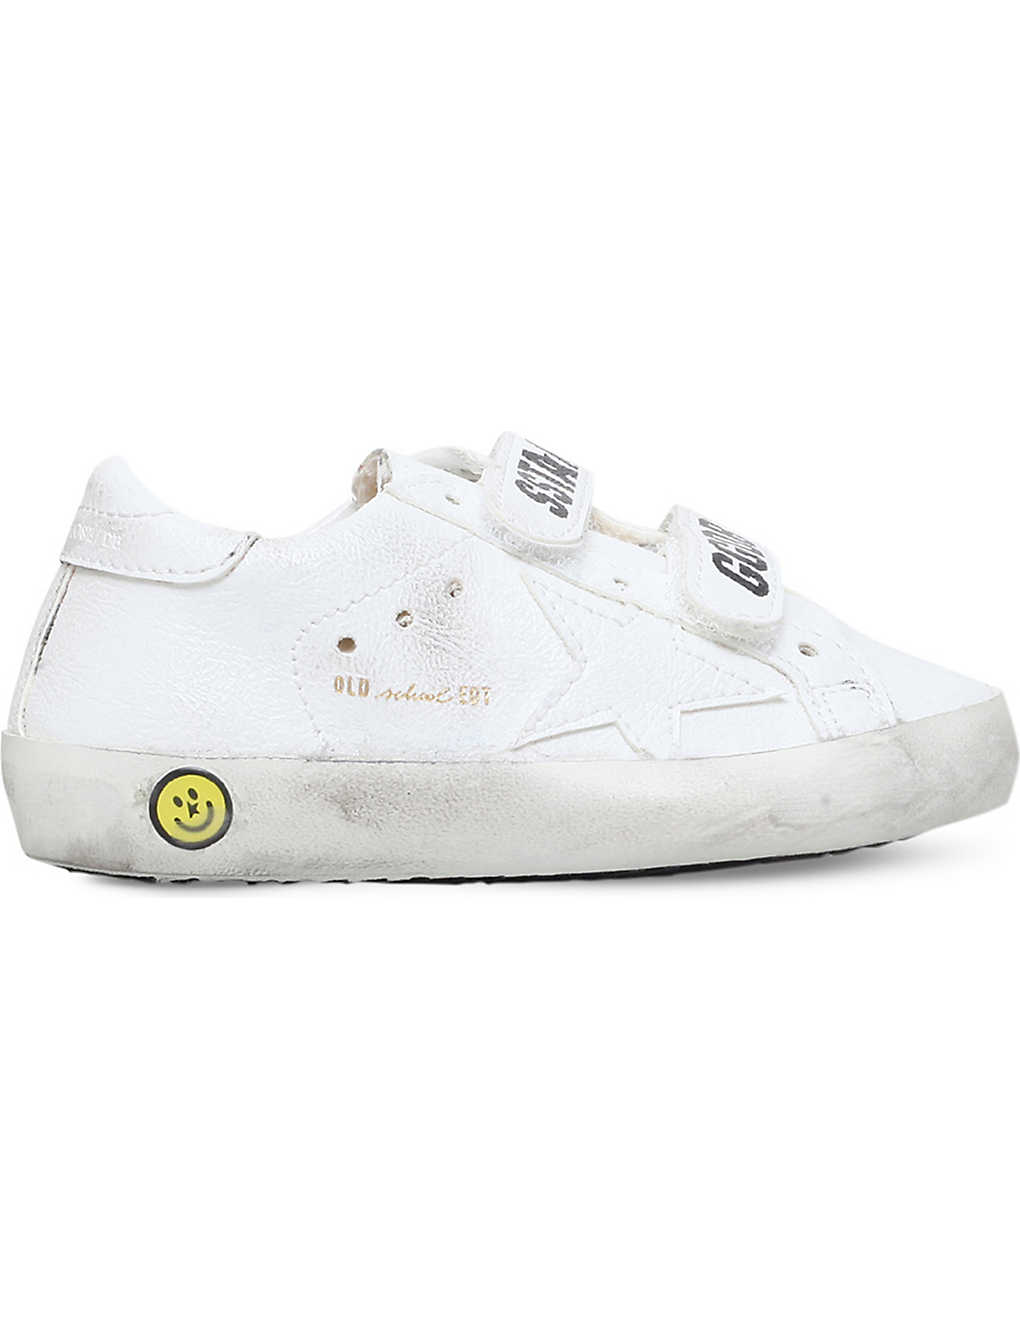 4a67ae50ed563 GOLDEN GOOSE - Superstar leather trainers 2-5 years | Selfridges.com